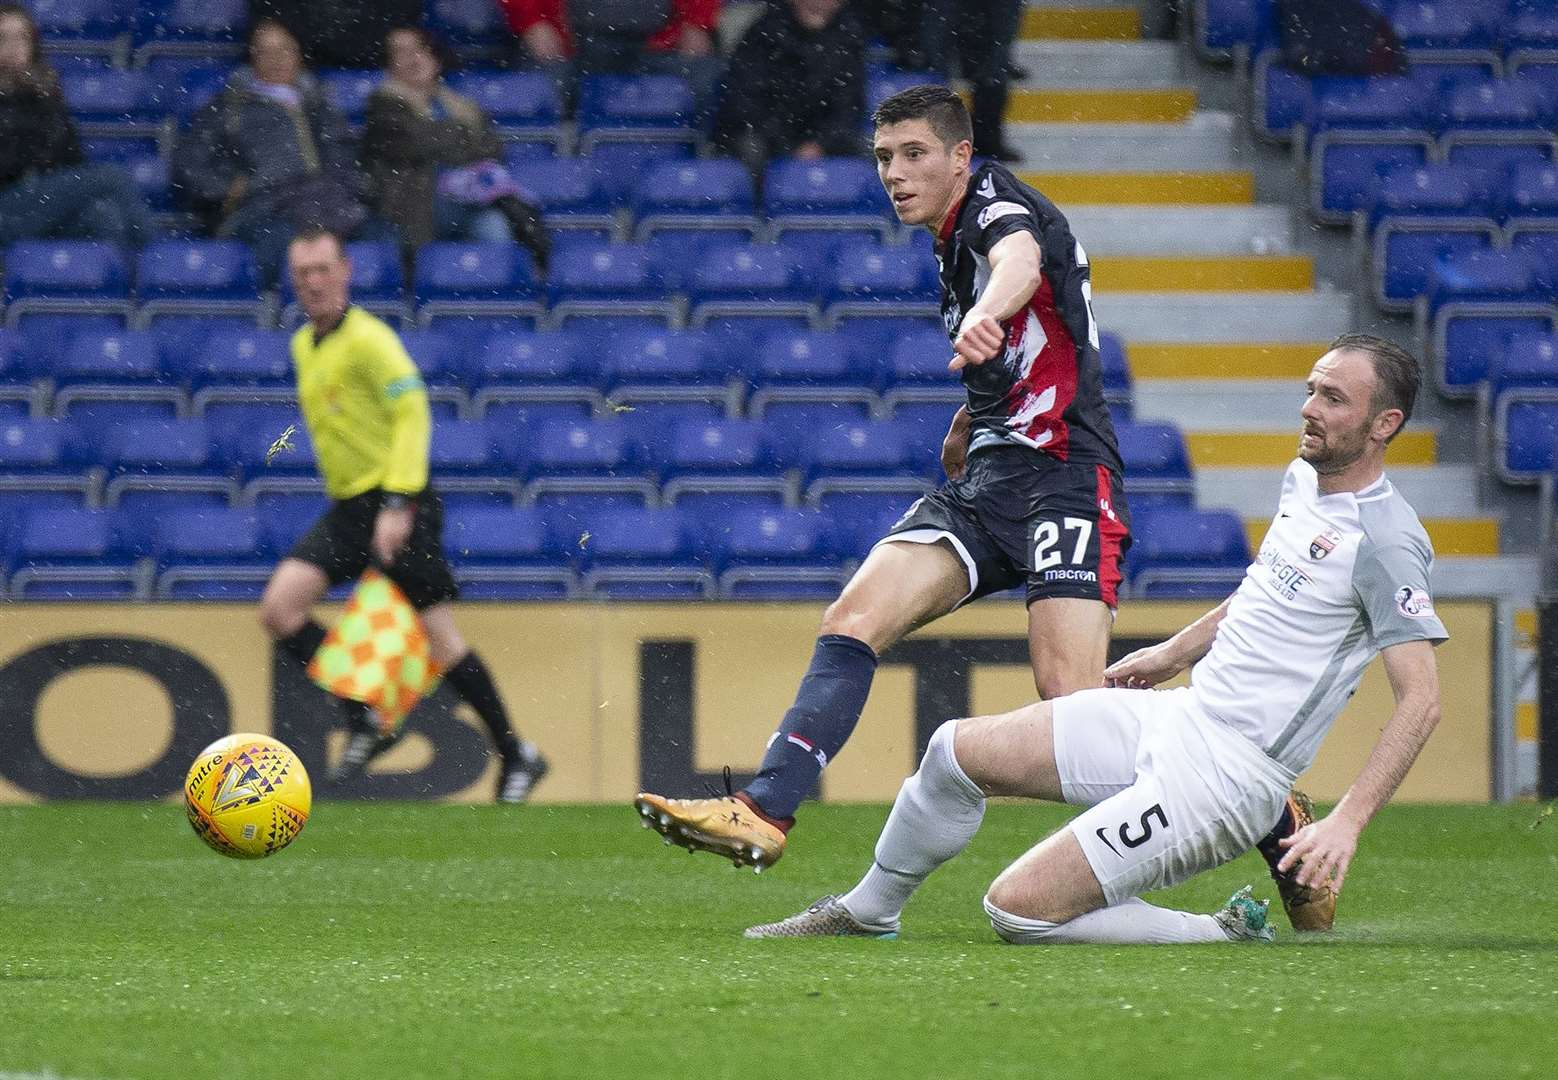 Ross Stewart made it 3-0 for Ross County. Picture: Ken Macpherson